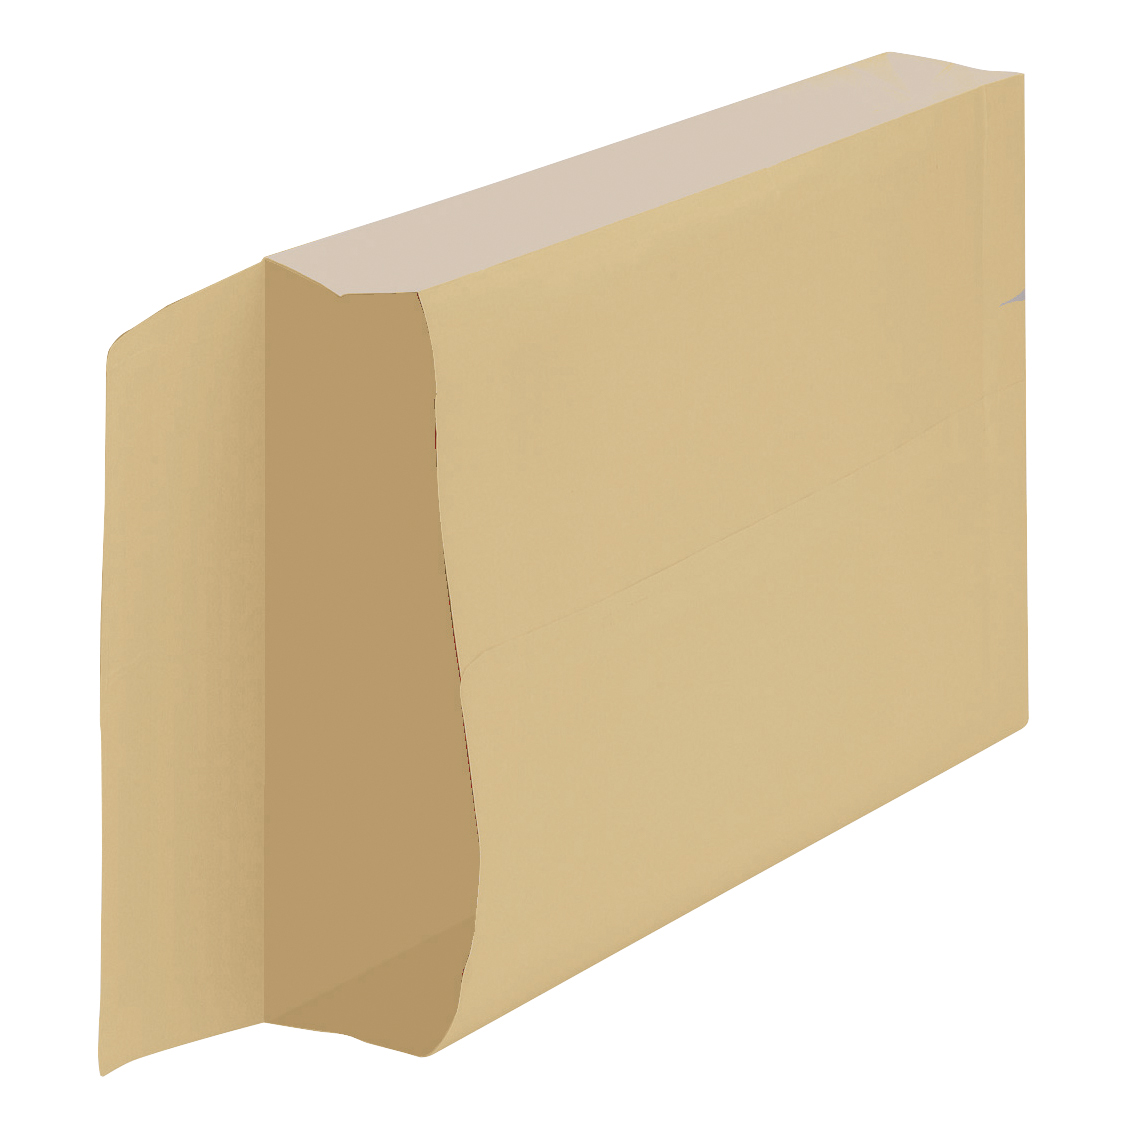 New Guardian Armour Envelopes 470x300mm Gusset 70mm Peel&Seal 130gsm Kraft Manilla Ref B28513 Pack 100